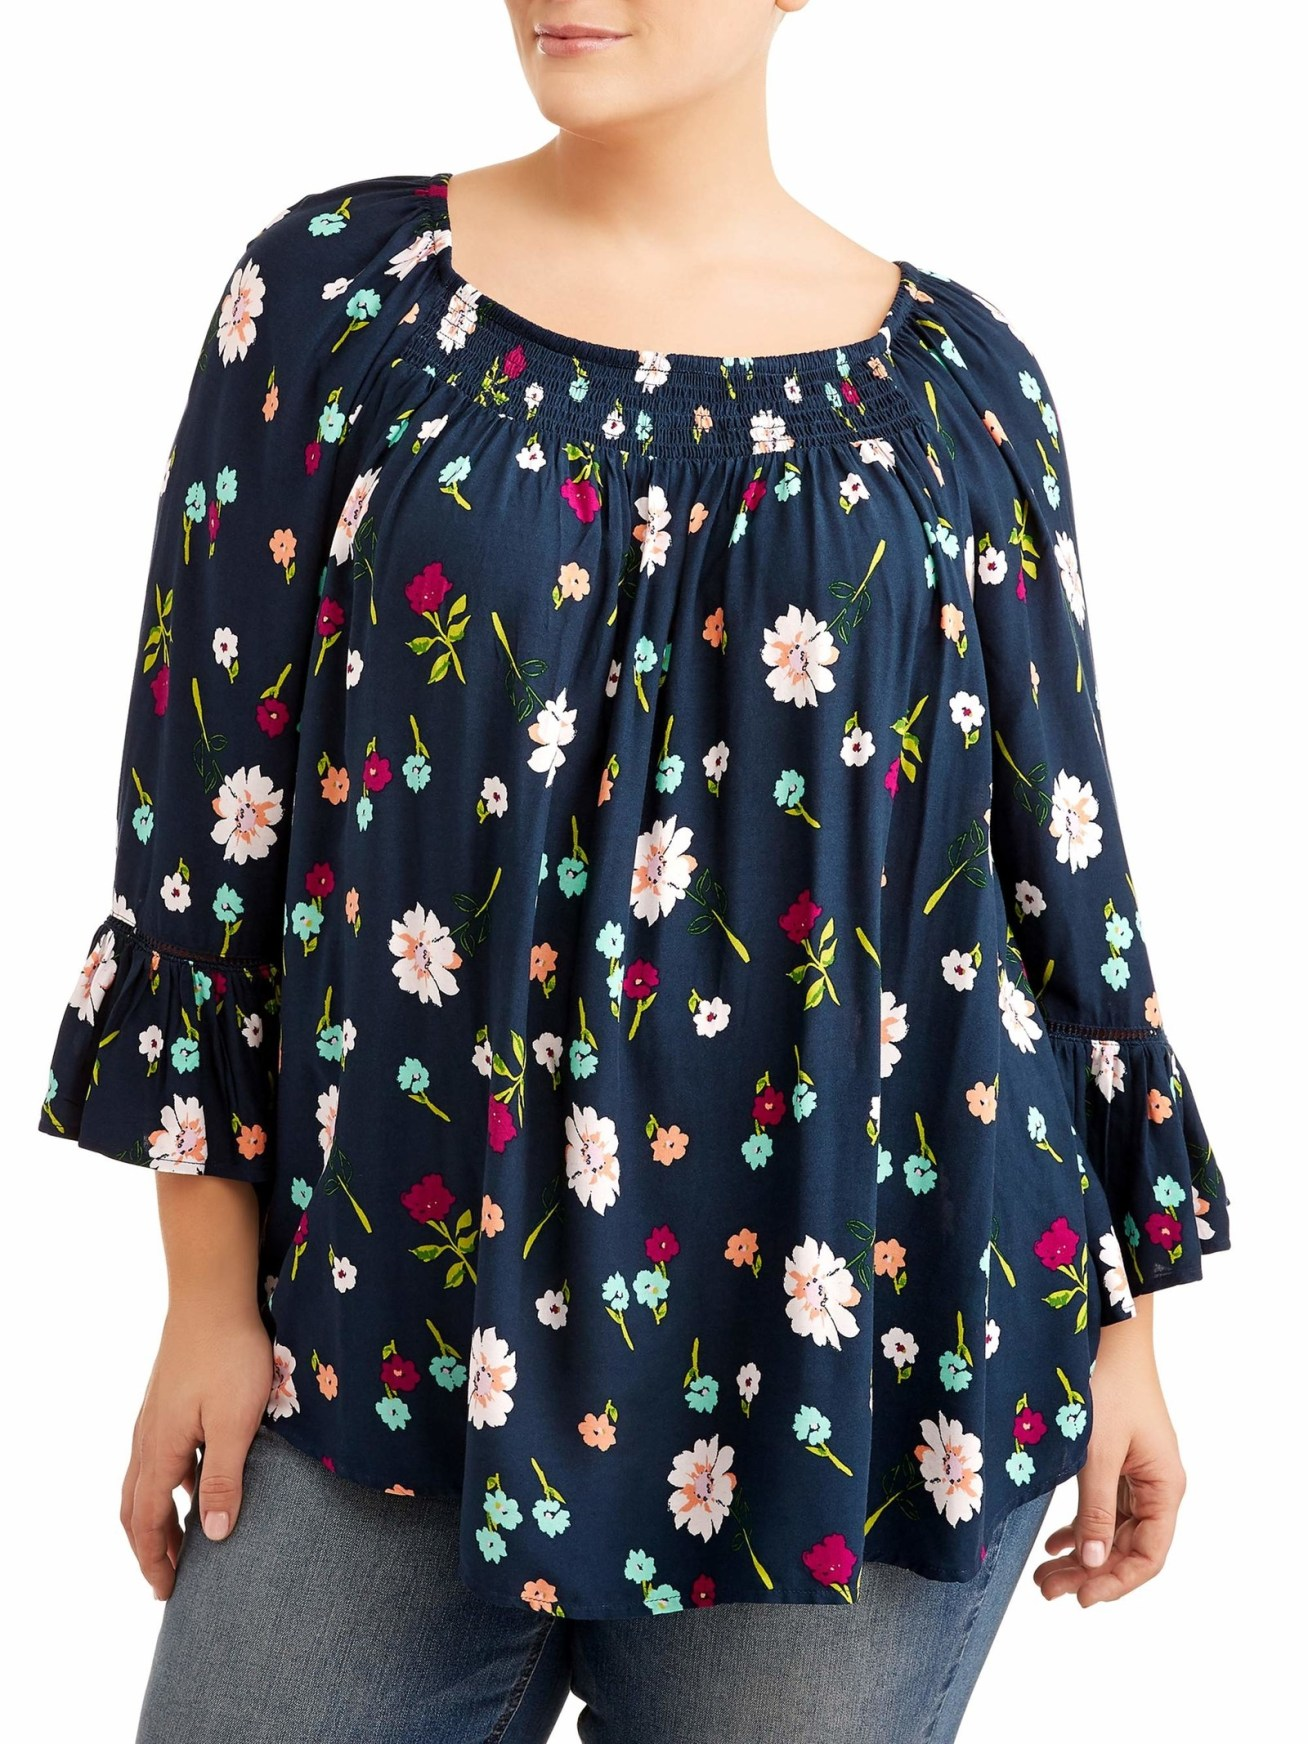 Price: .87 (available in sizes 0X–4X and eight patterns)